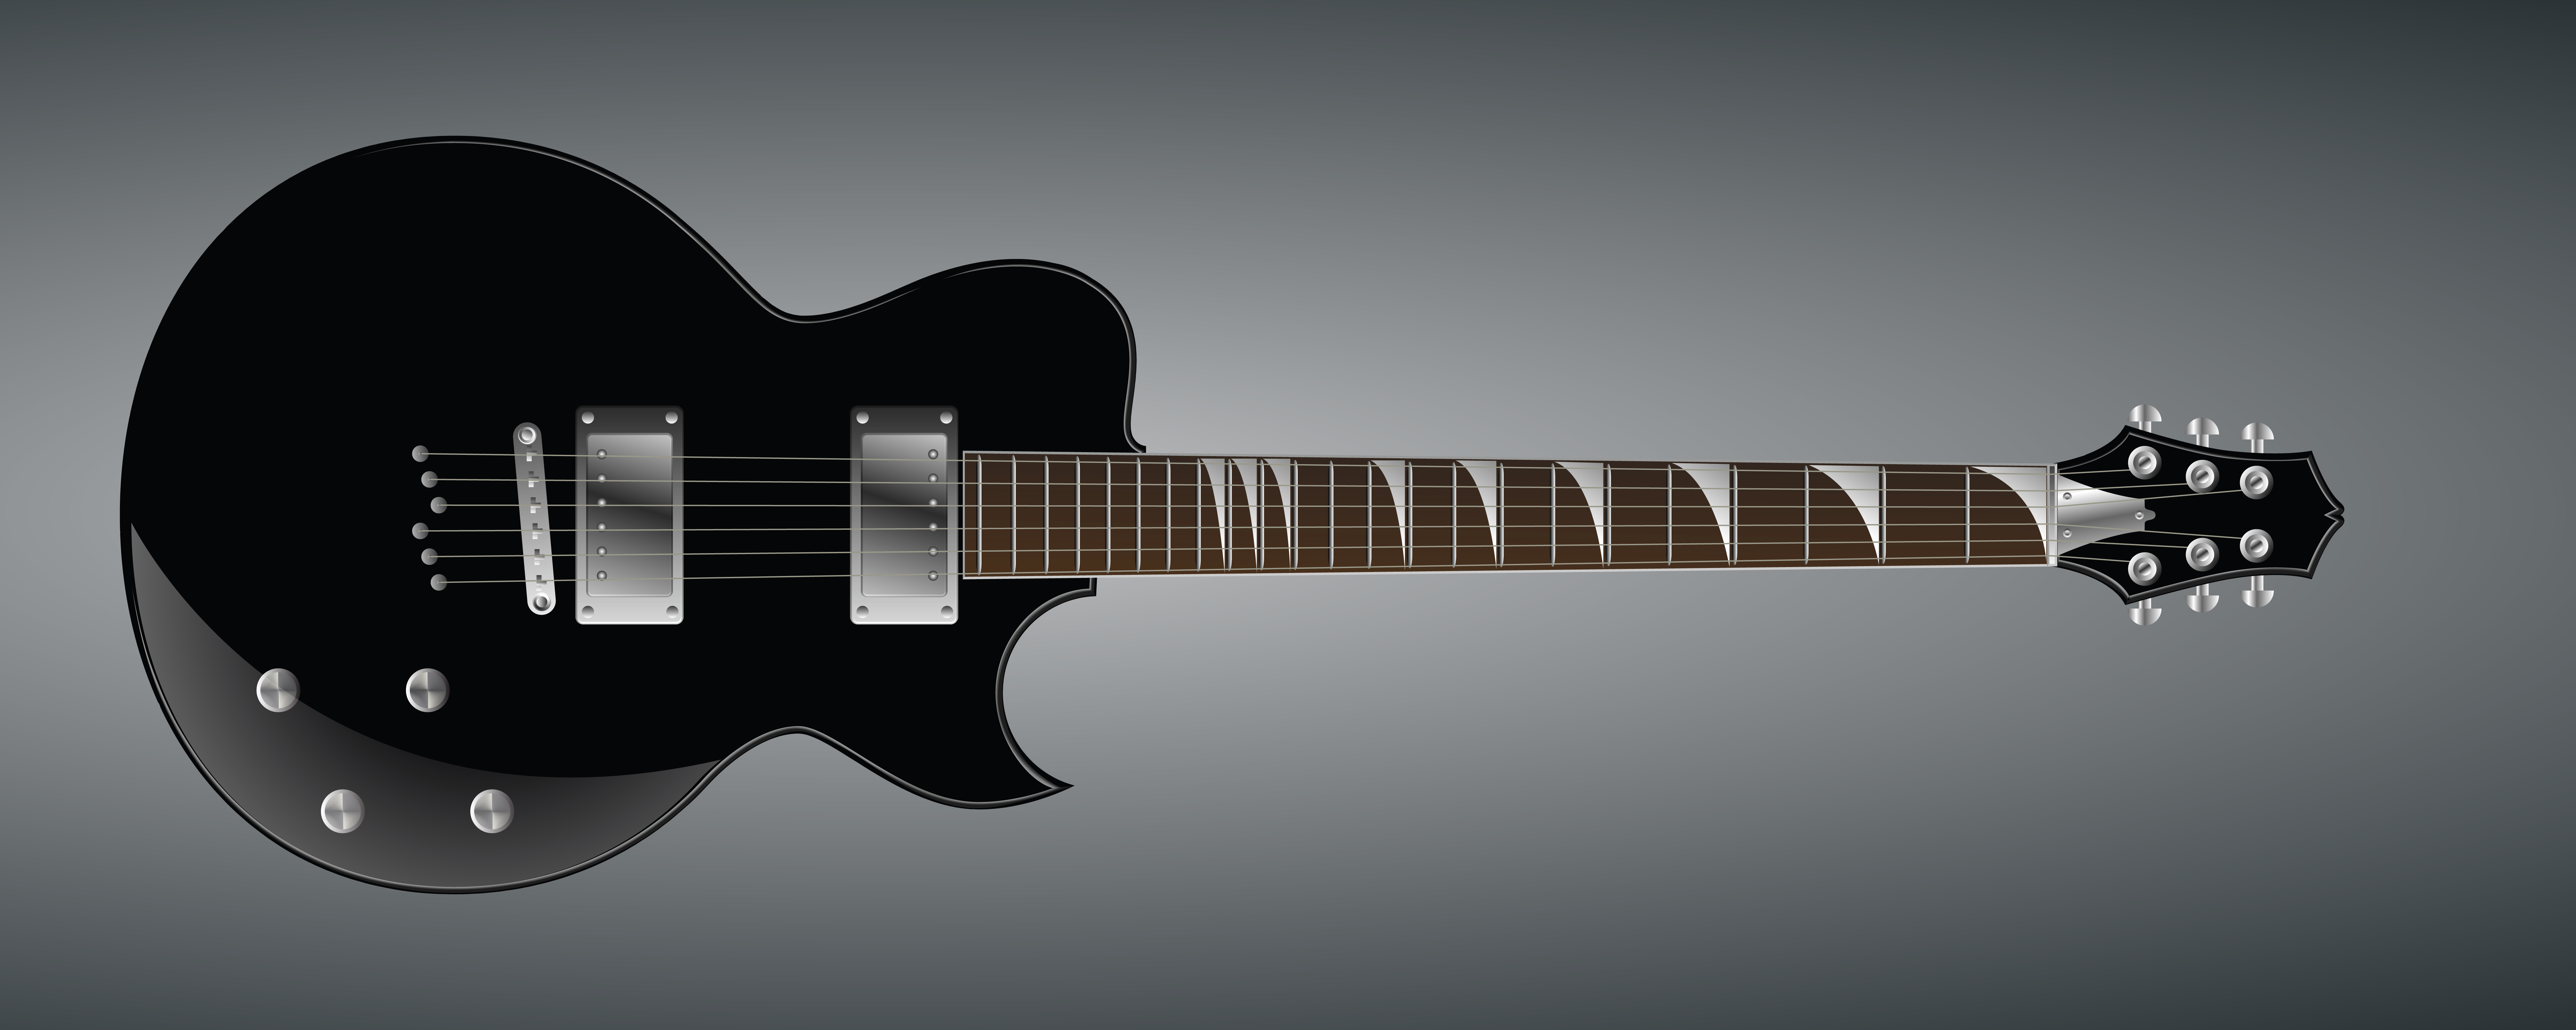 electric guitar by duceduc on deviantart. Black Bedroom Furniture Sets. Home Design Ideas